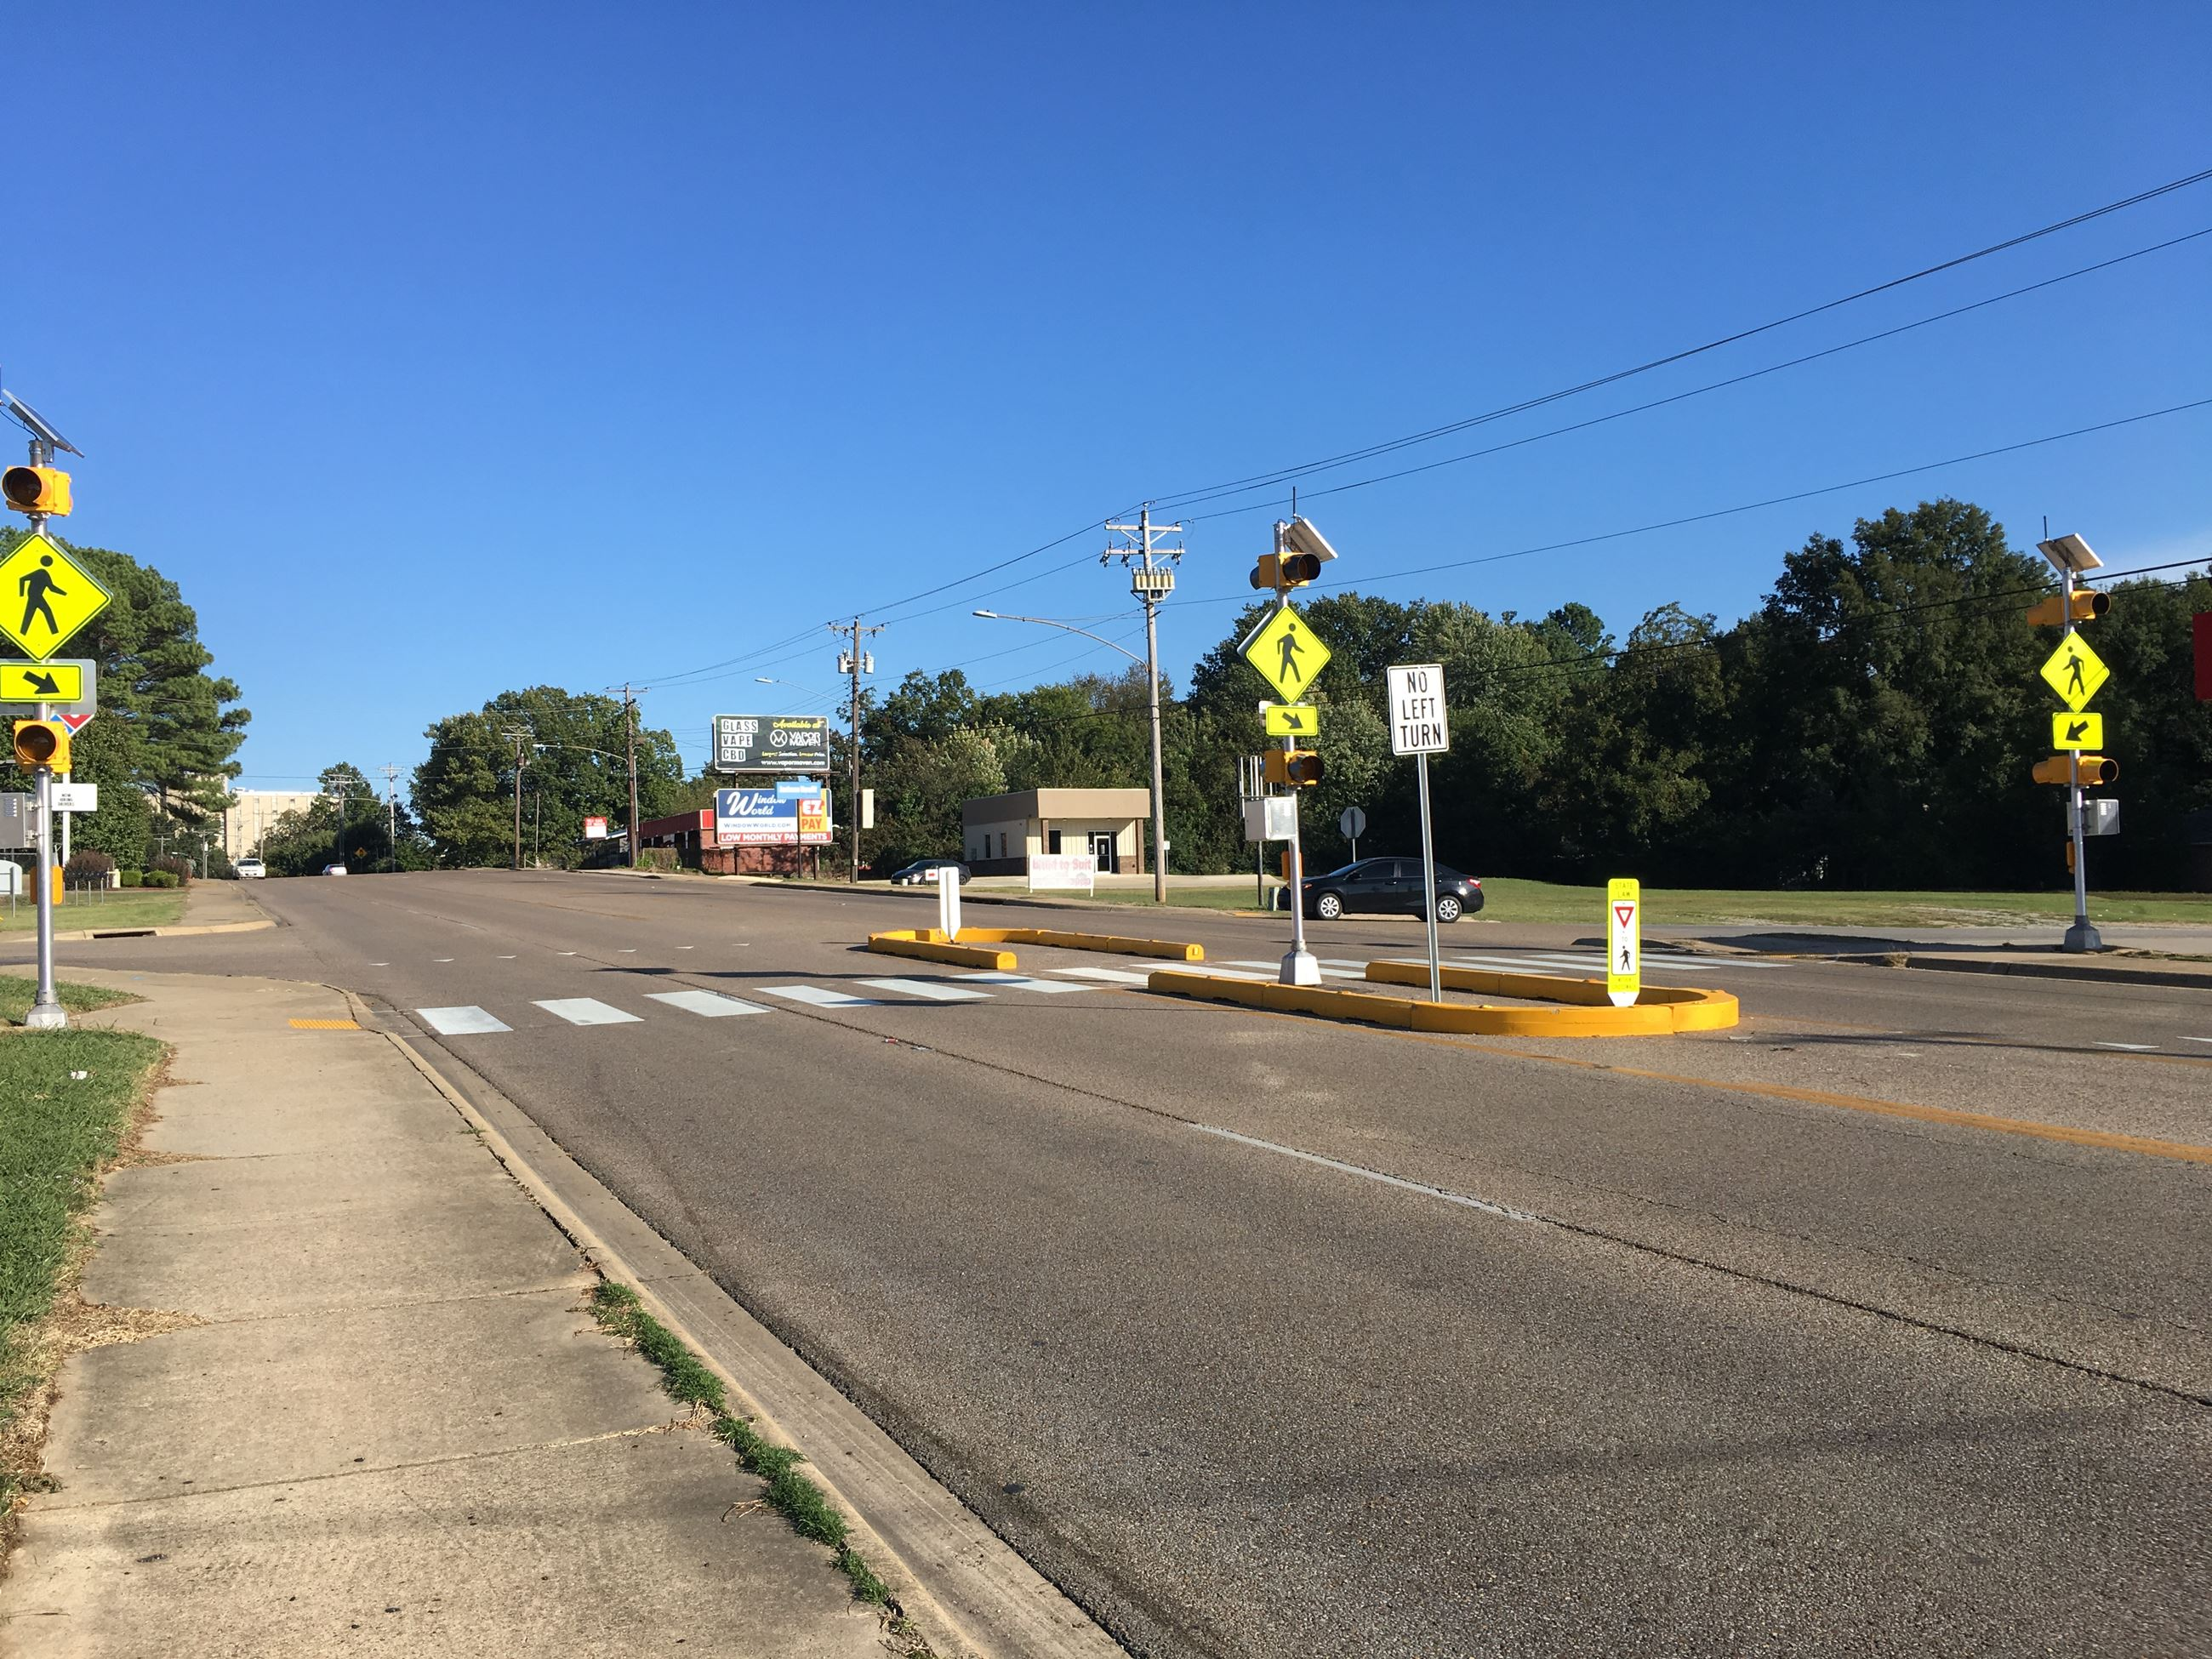 Temporary Pedestrian Crossing at Highway 91 and State Street intersection